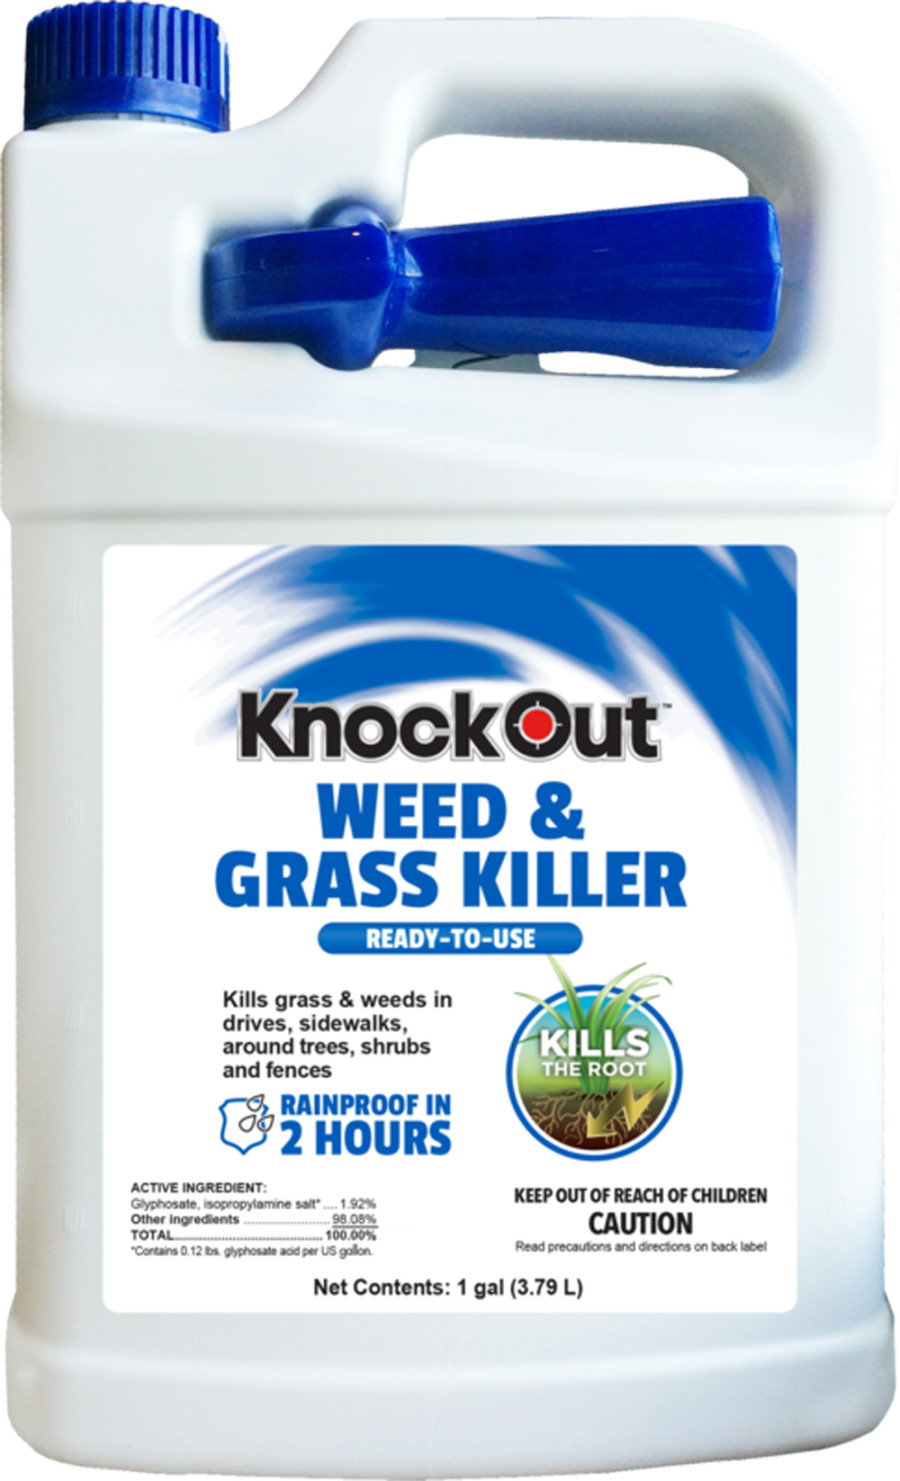 Knockout Weed & Grass Killer Ready To Use 4ea/1 gal